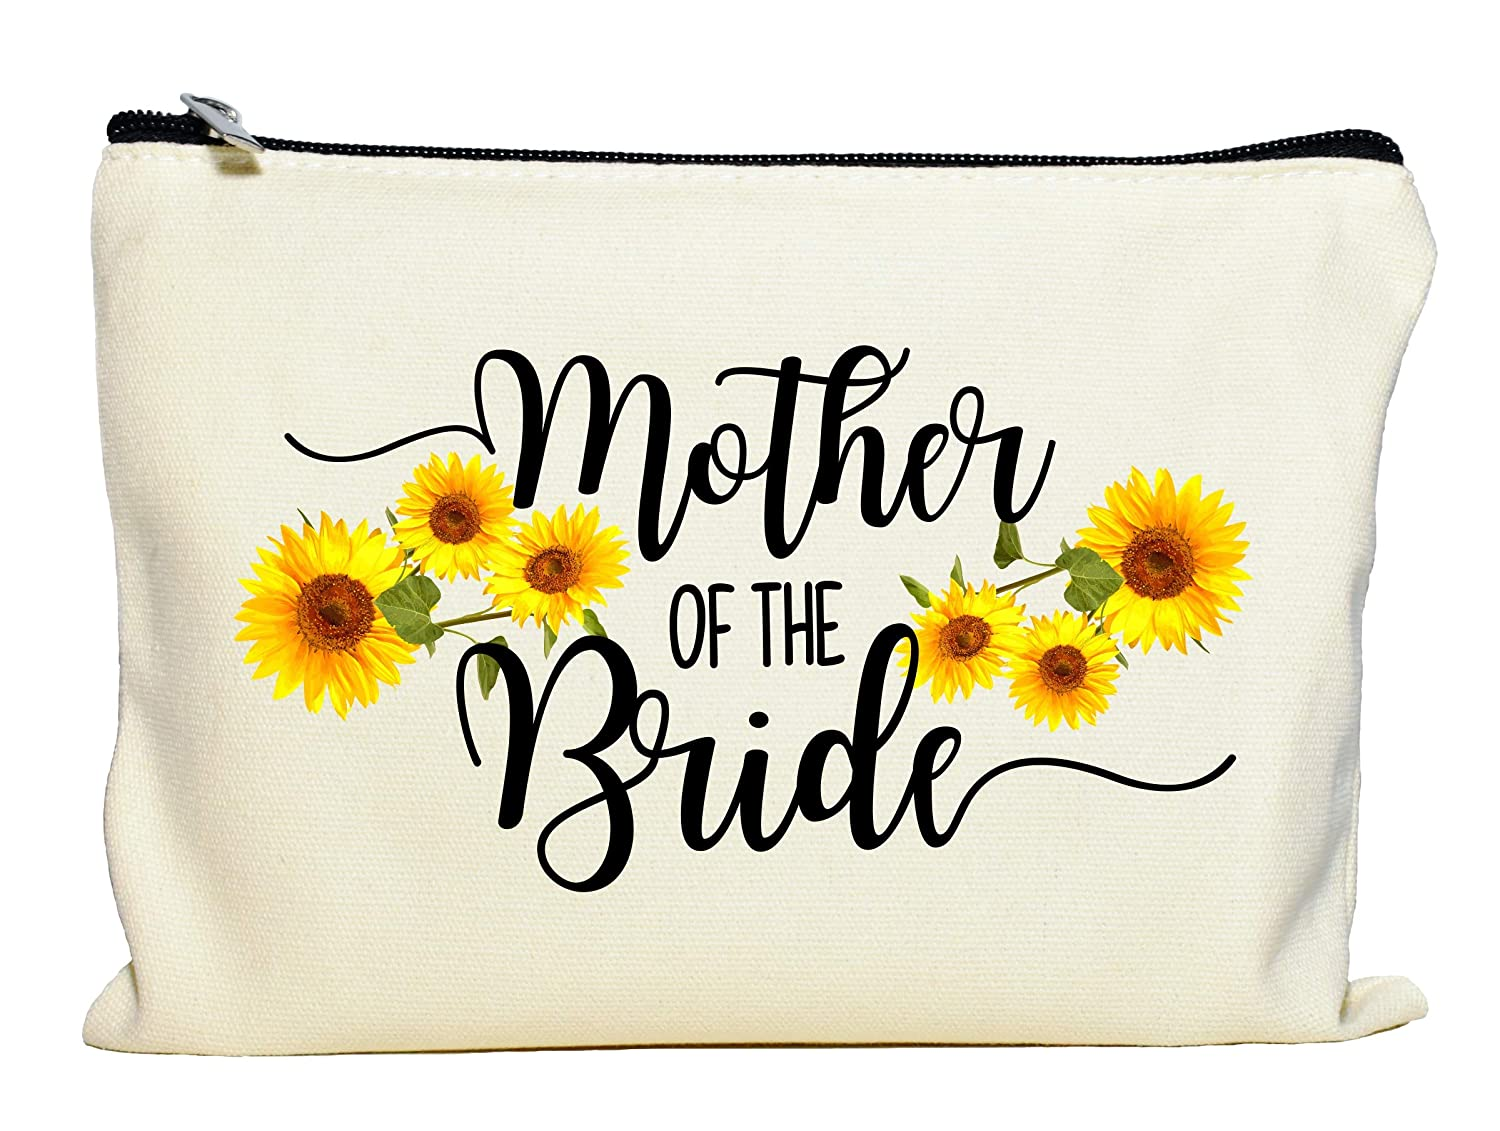 Mother Of The Bride Gift, Sunflower Makeup Bag, Bridal Party Gift, Mother of the Bride Clutch Bag, Cosmetic Pouch for Bride's Mother, Sunflower Wedding Gift